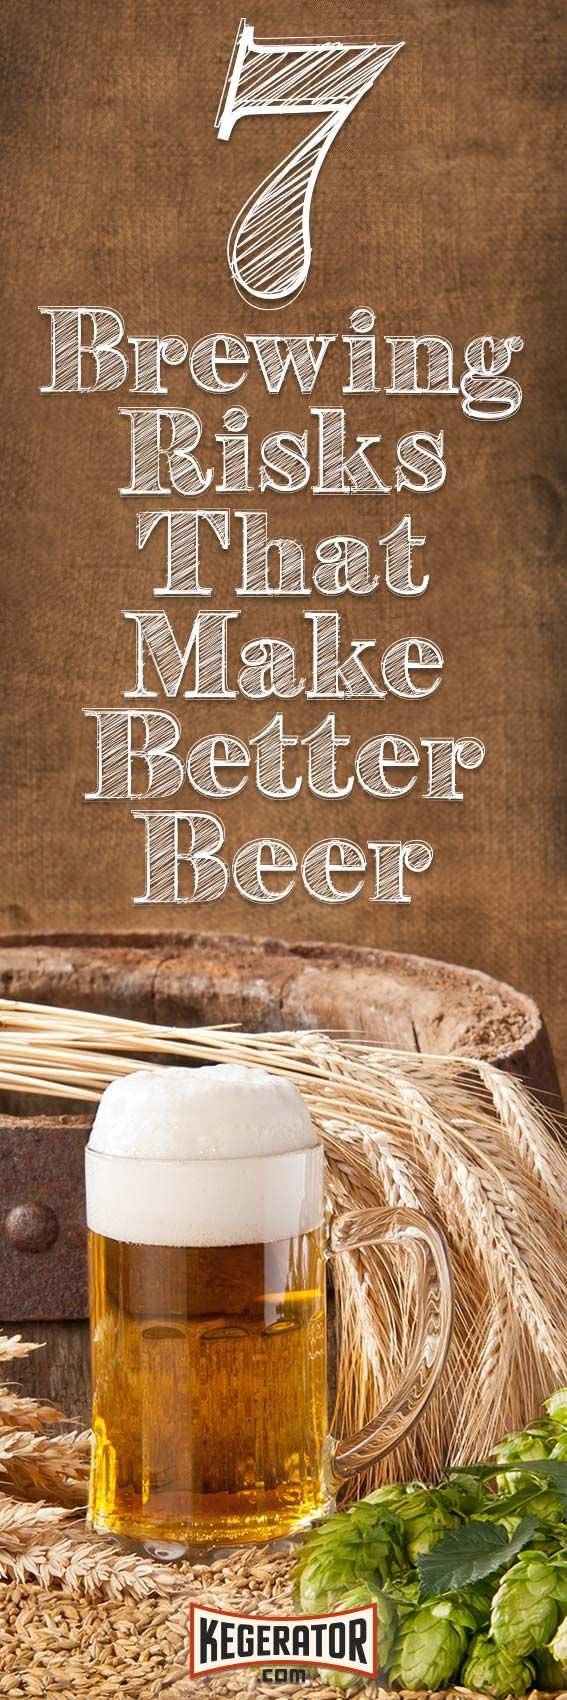 7 Risks Every Homebrewer Should Take to Make Better Beer